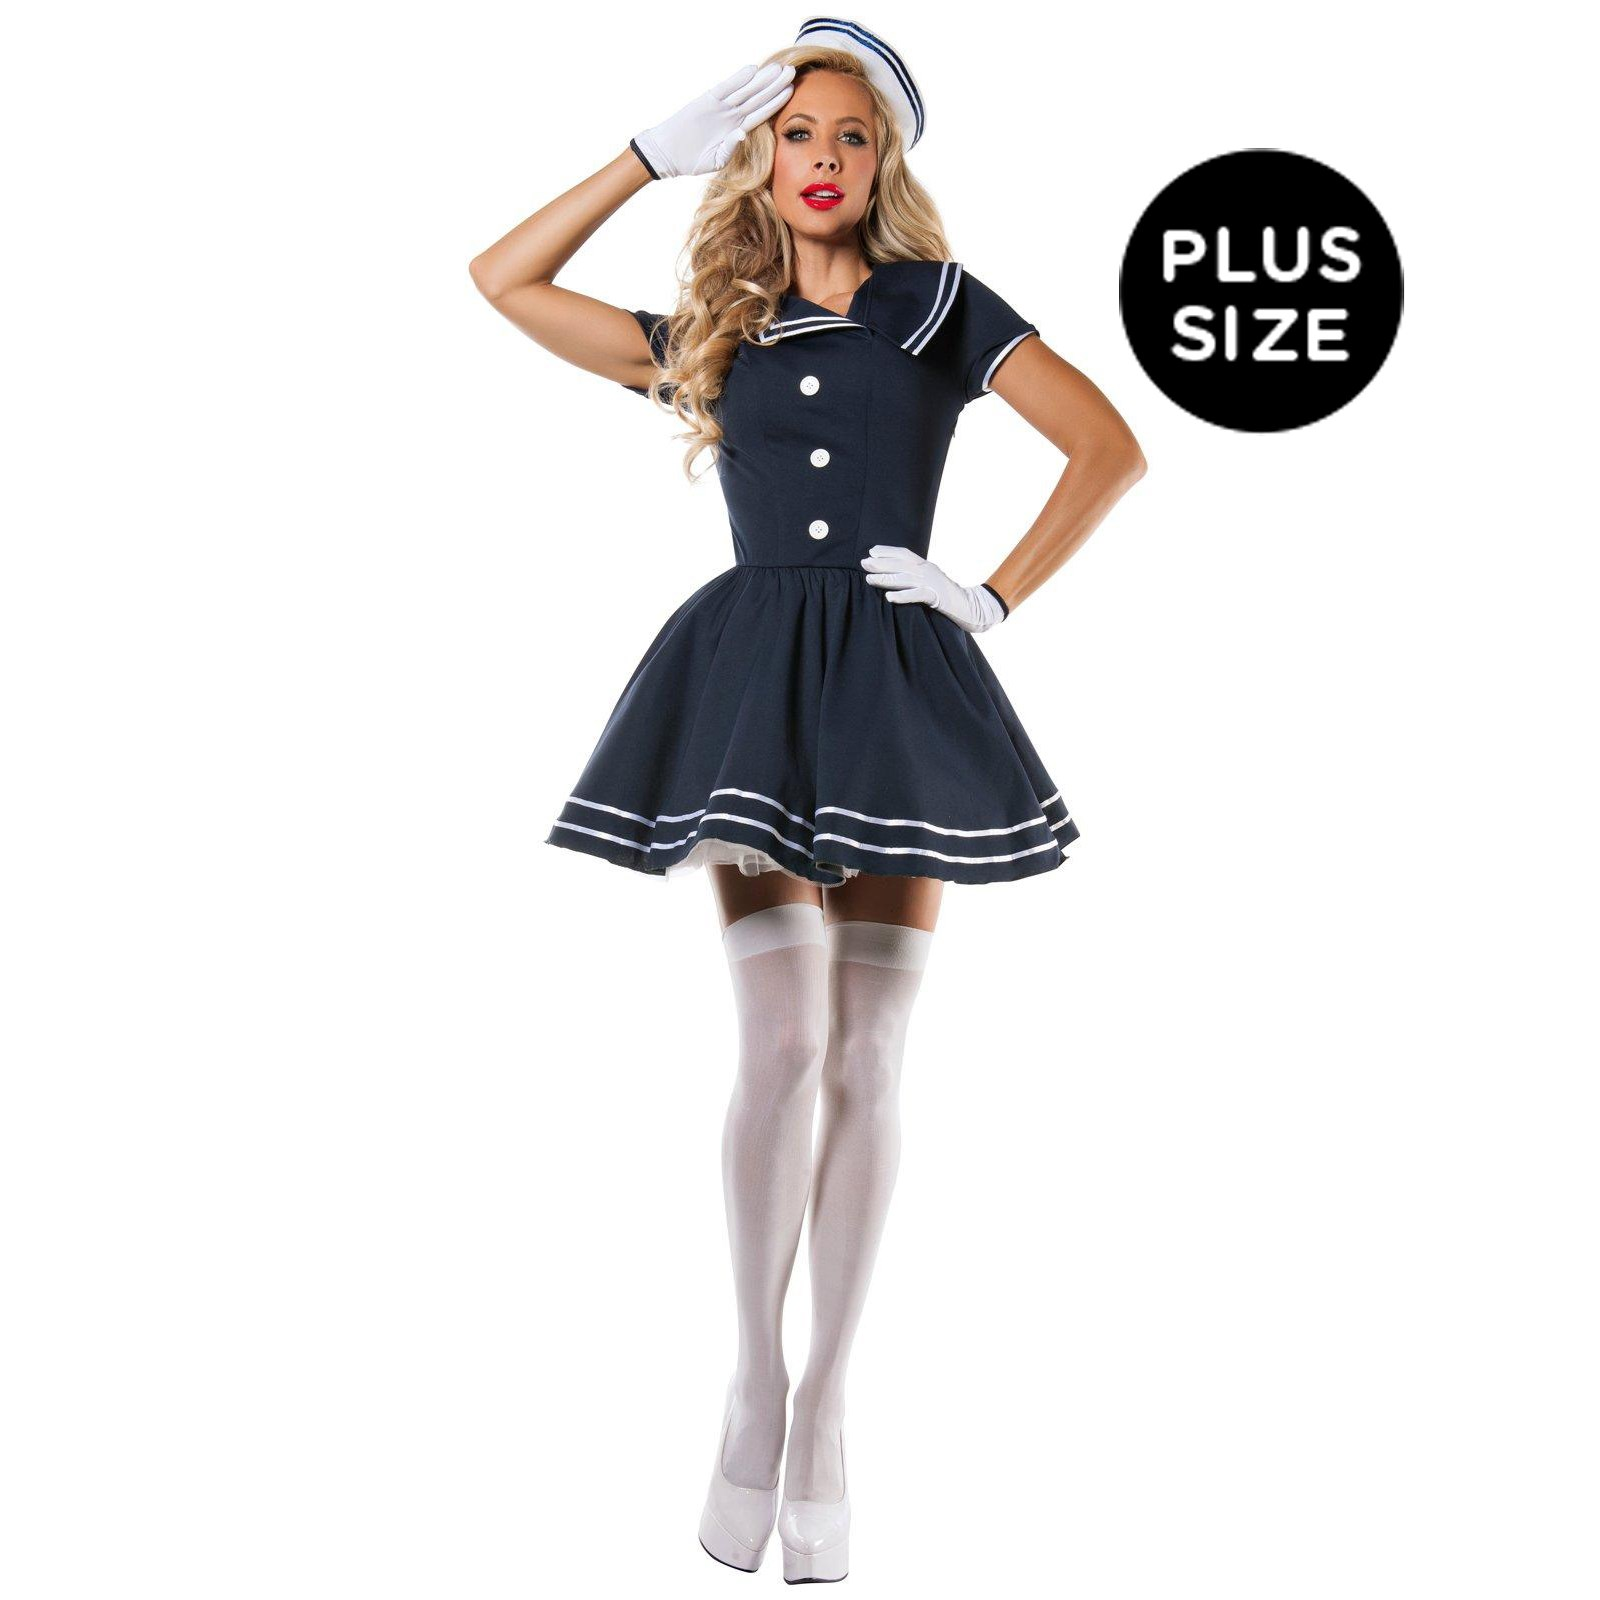 Adult Plus Size Pin Up Captain Costume